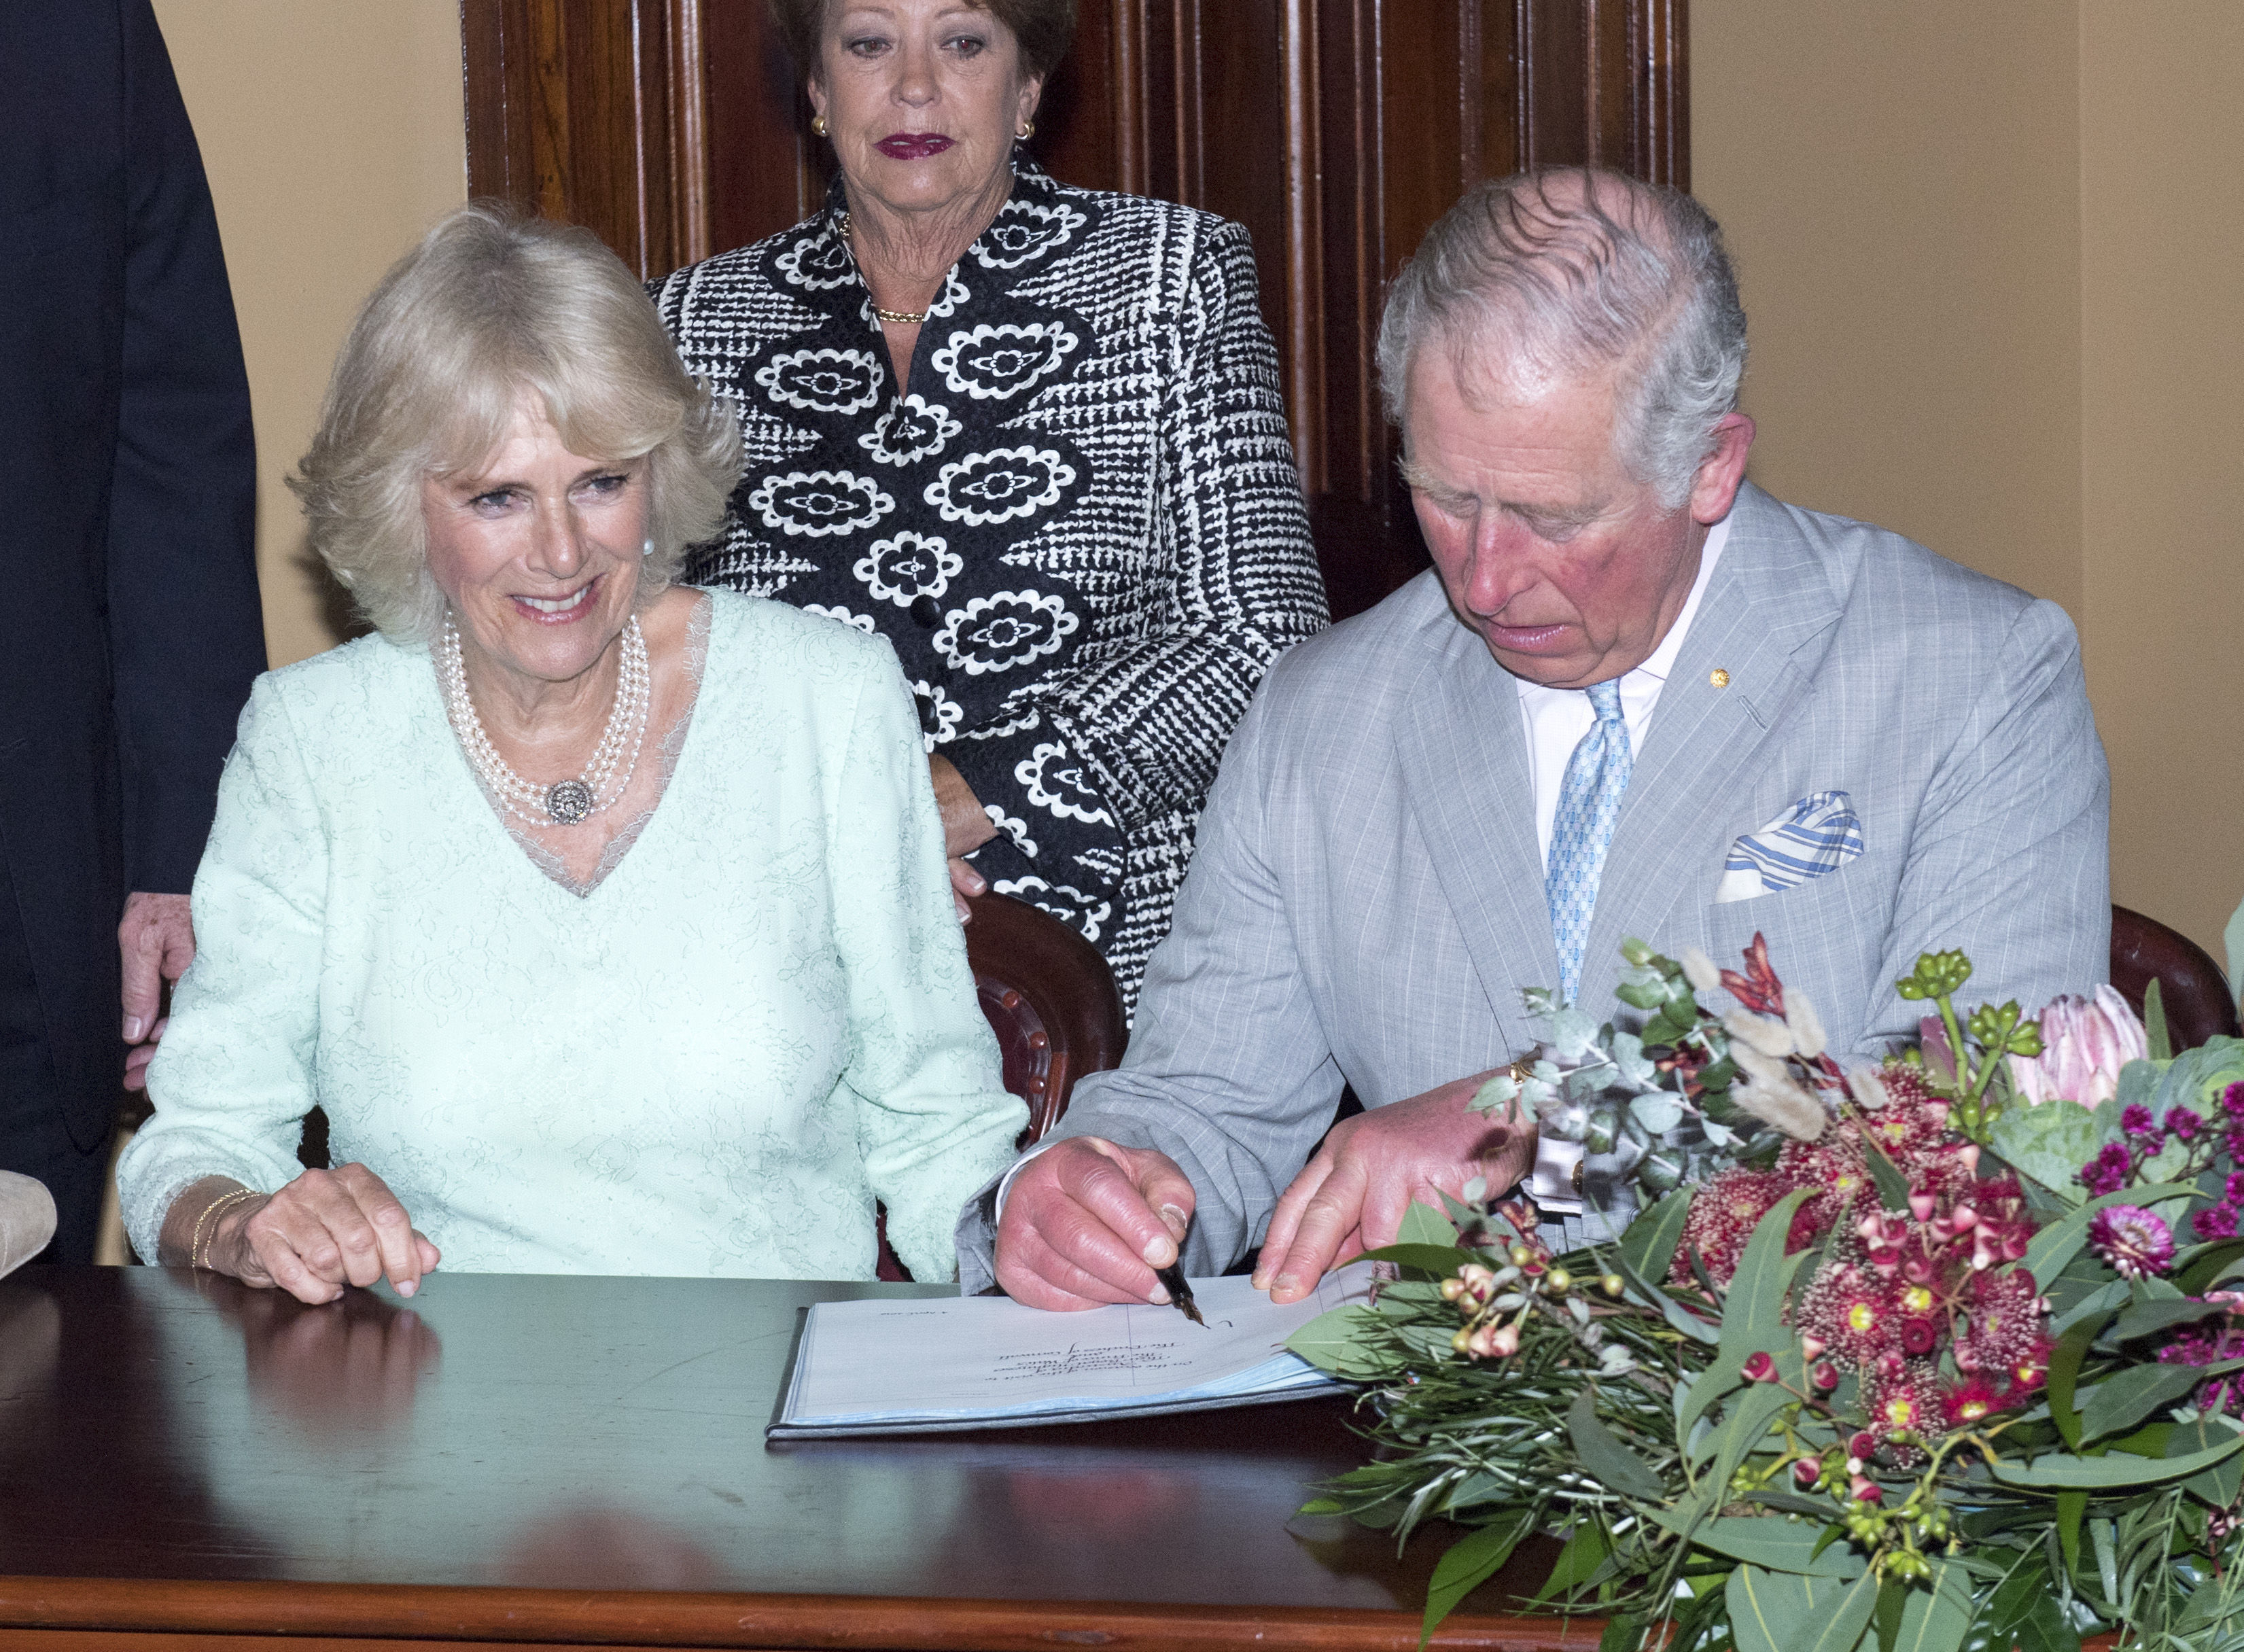 The Prince of Wales and  Duchess of Cornwall sign the visitors' book at Old Government House (Arthur Edwards/The Sun/PA)